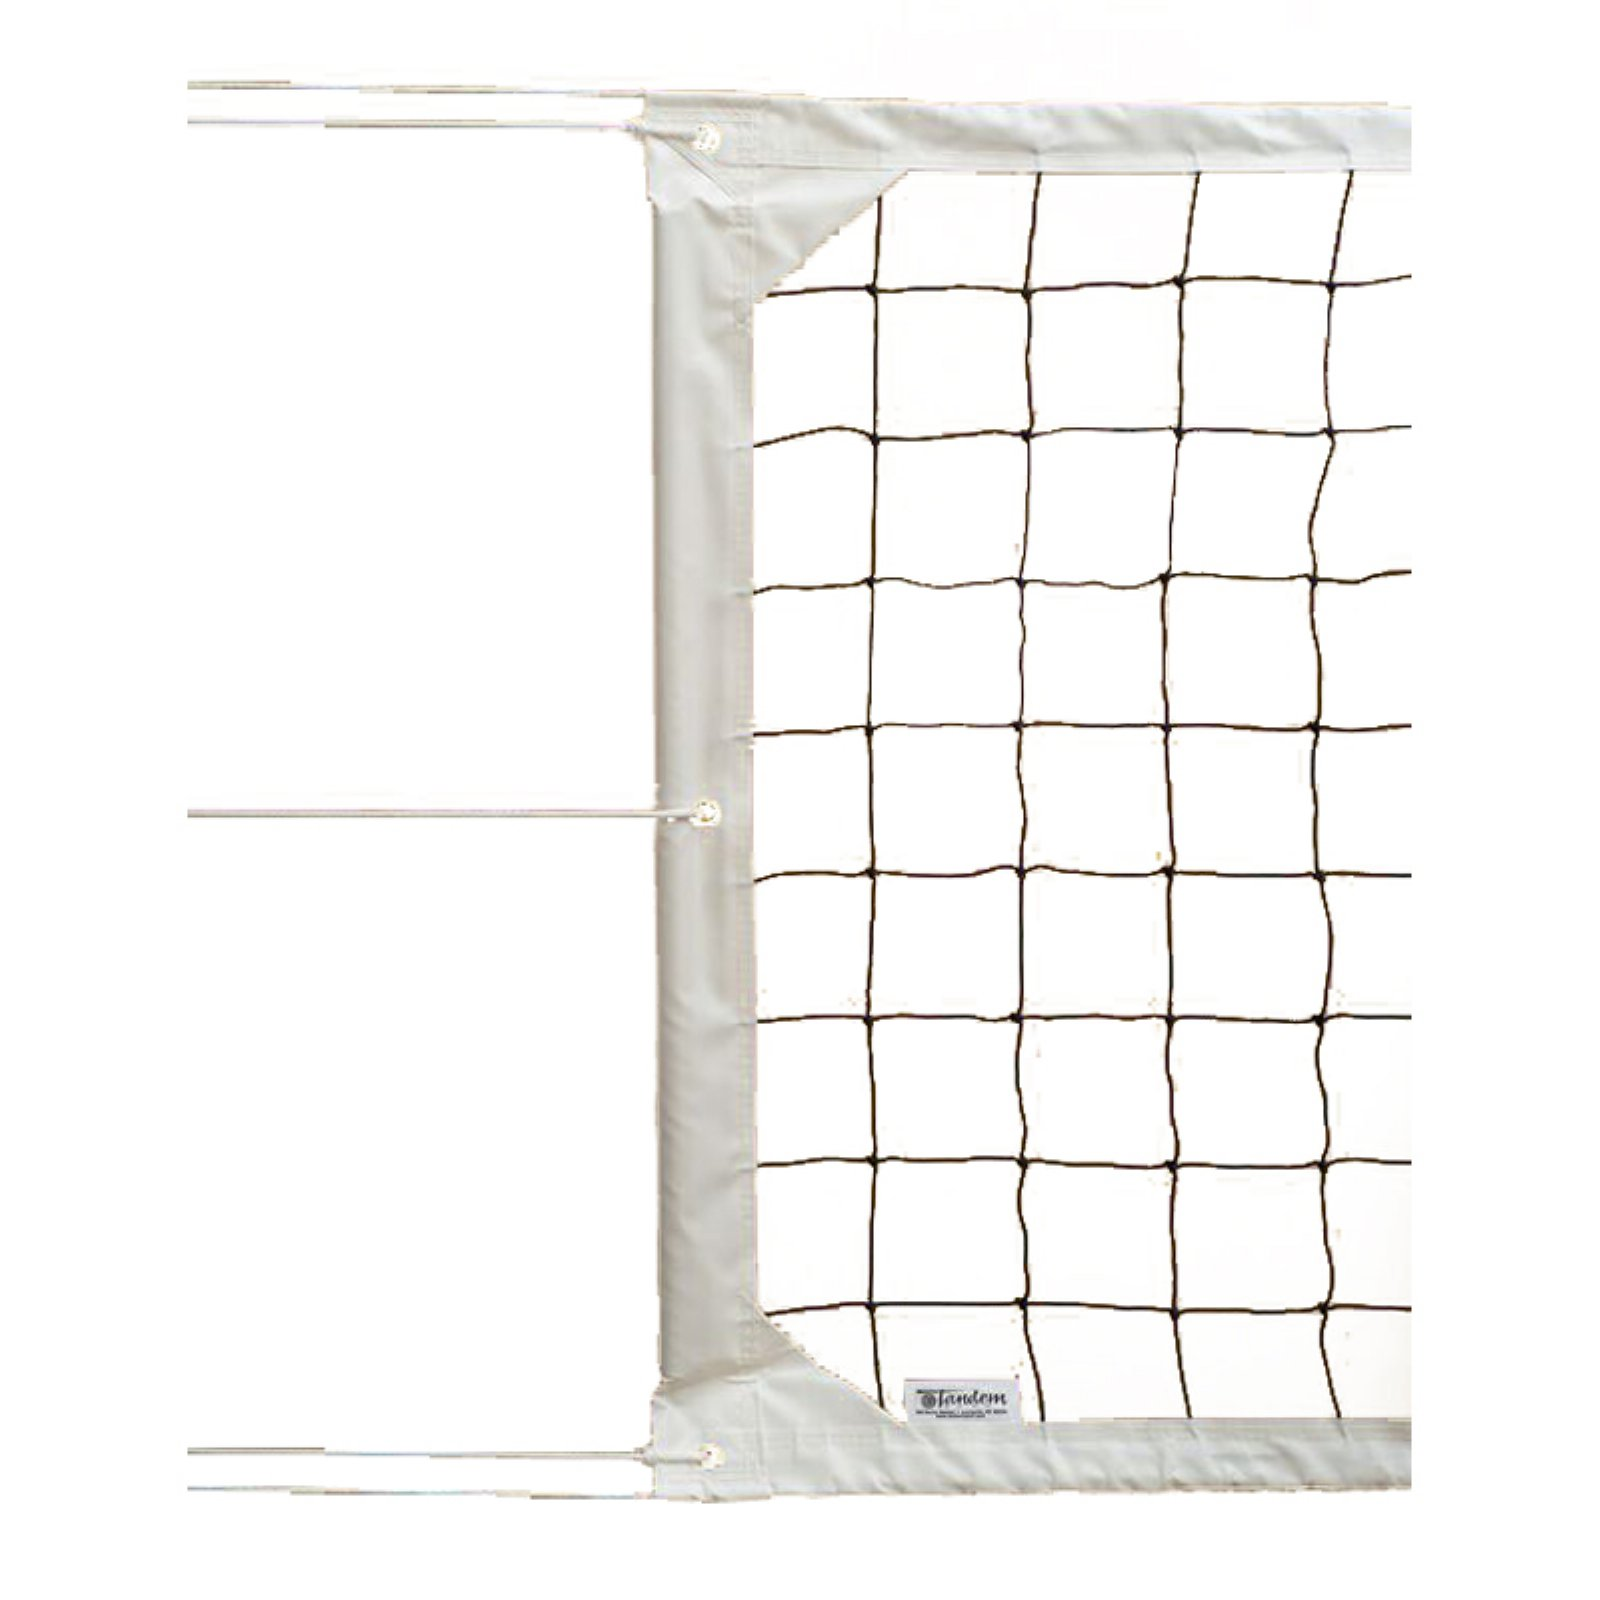 Tandem Sport Competition Cable Volleyball Net